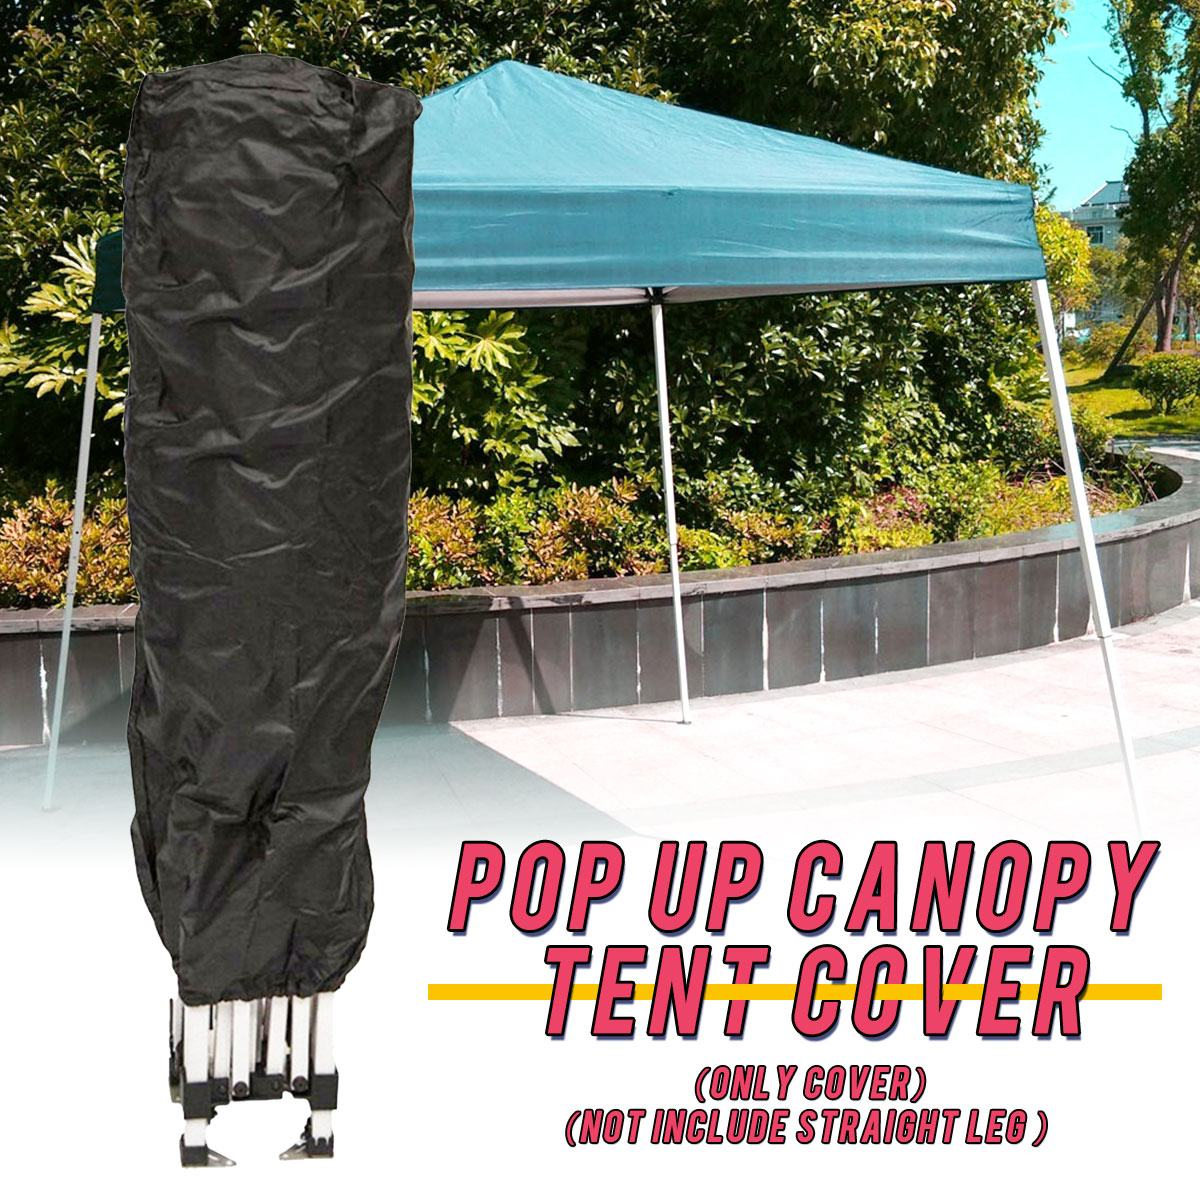 Dustproof Cover for Gazebos Pop Up Canopy Tent Anti UV Outdoor Garden Tent Canopy Marquee Shade protector Waterproof 3 sizes|Gazebos| |  - title=